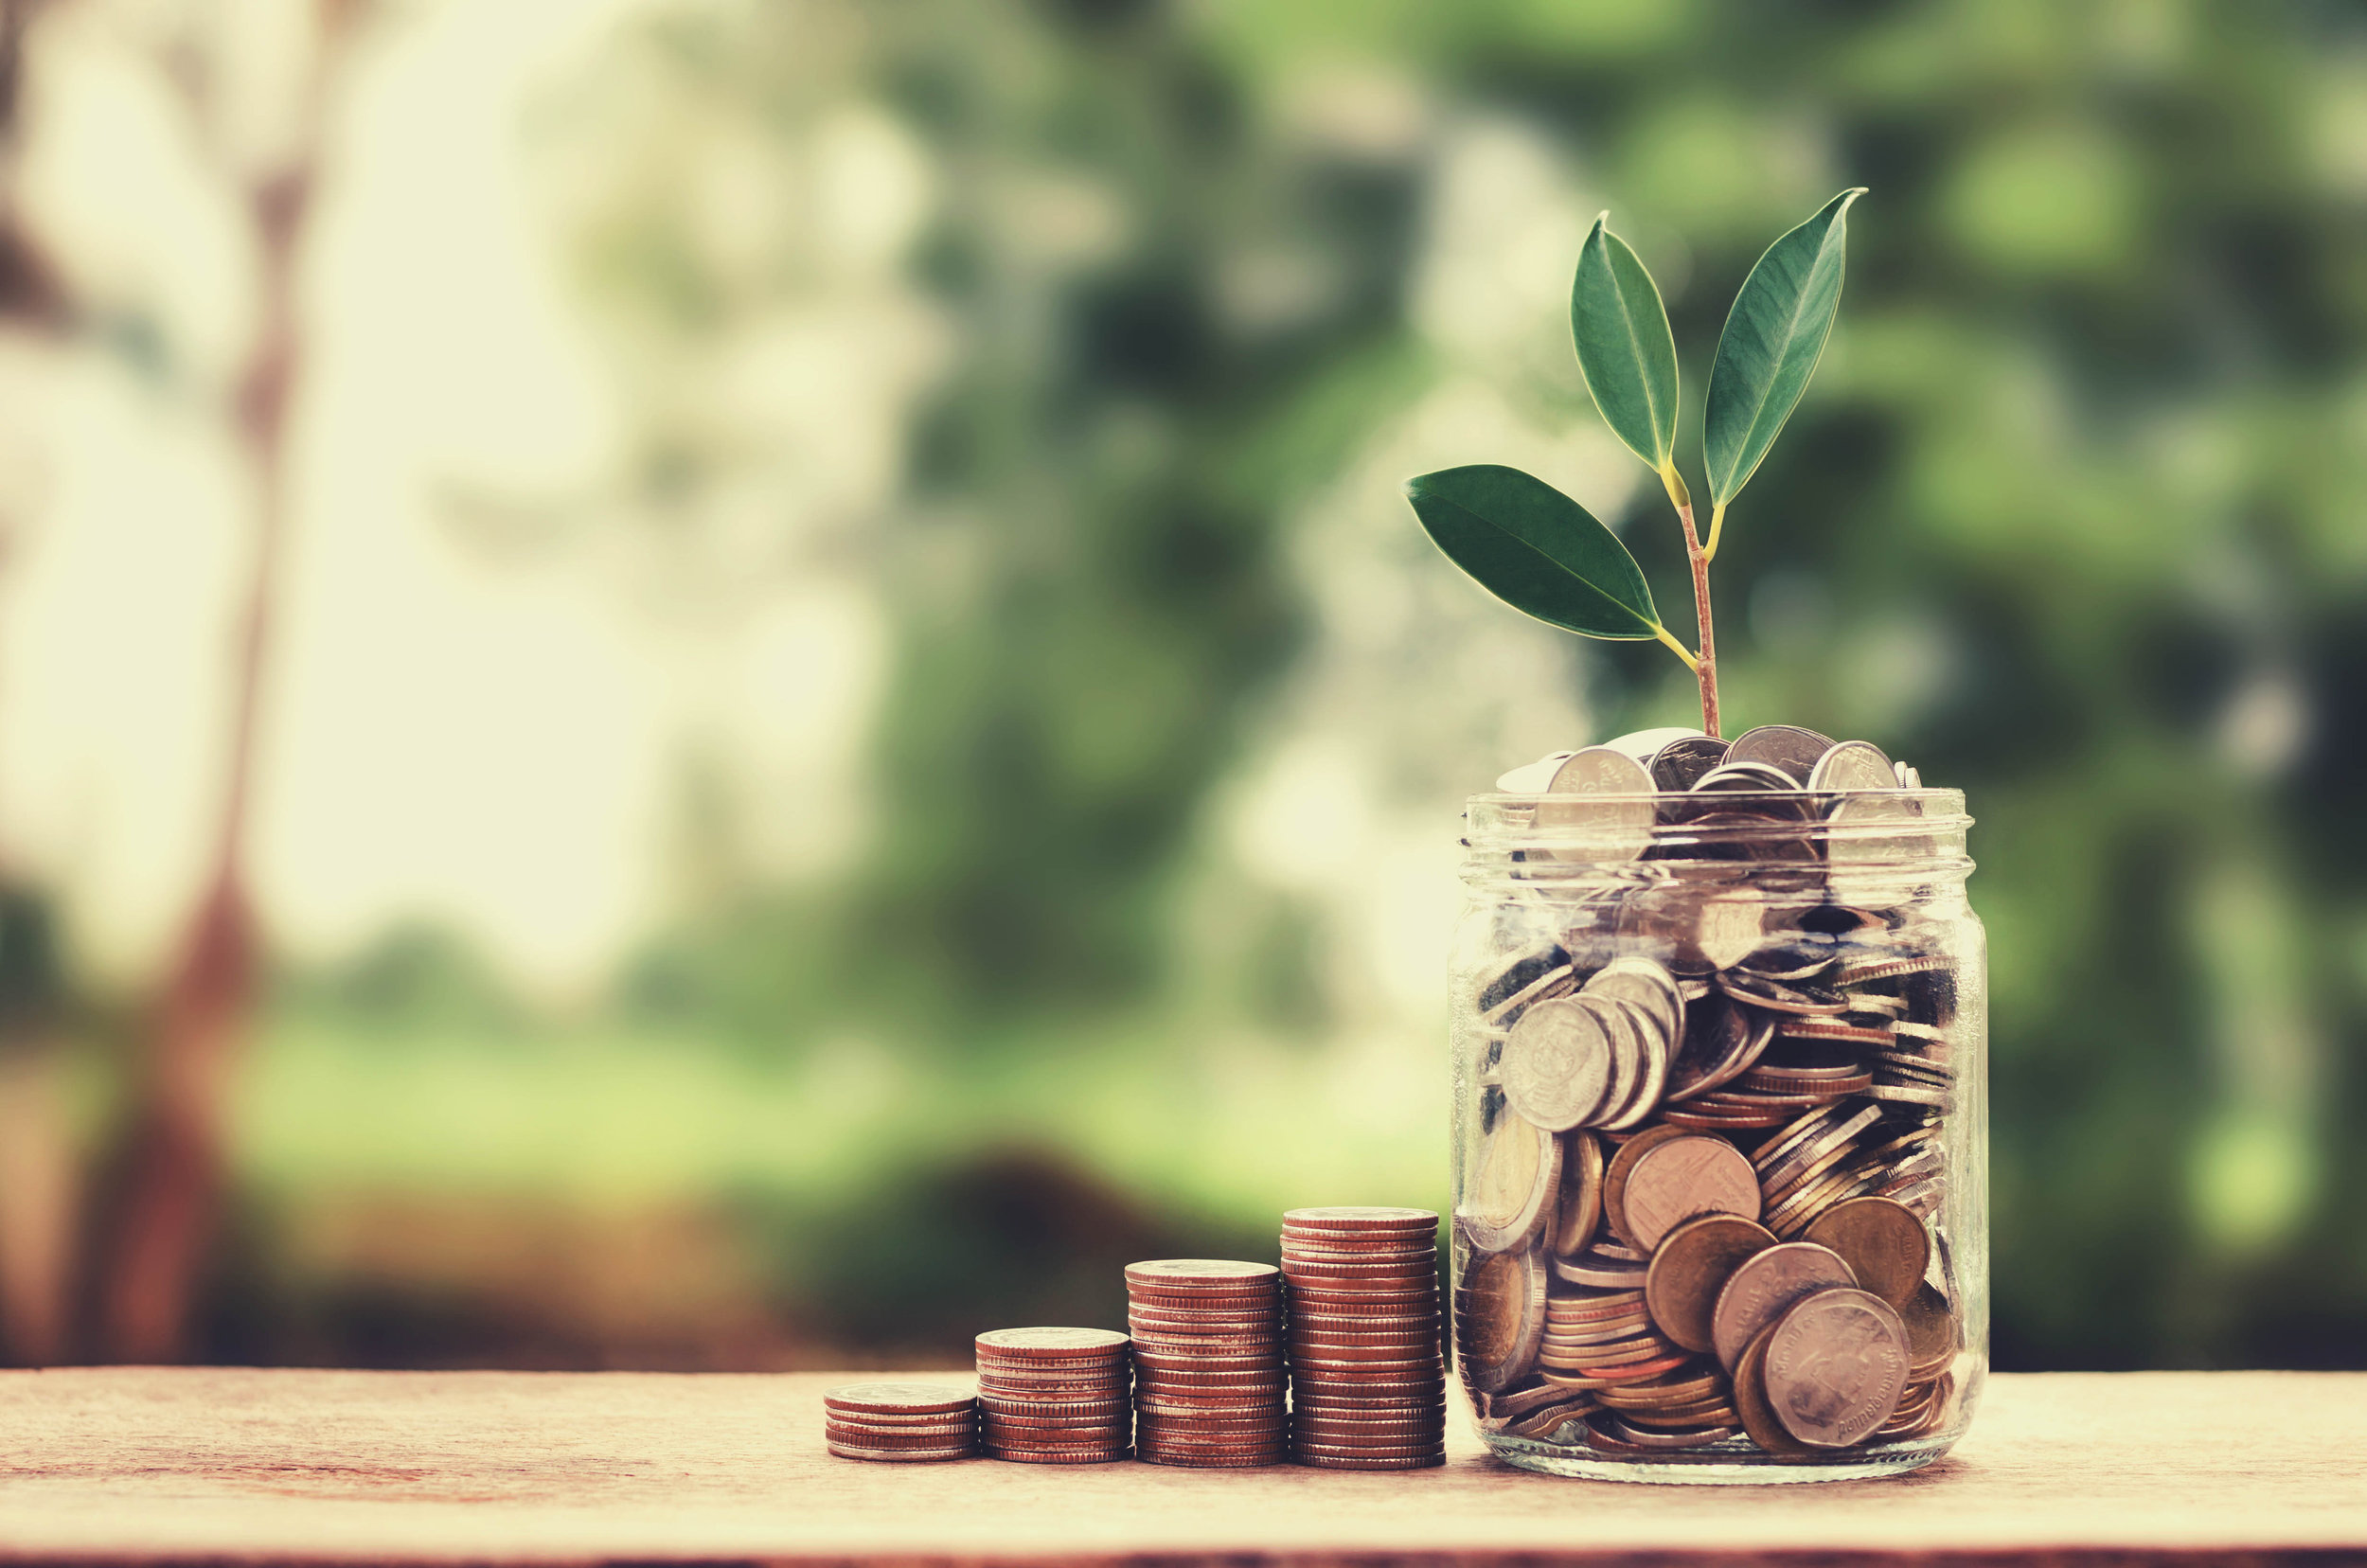 SMART CENTS - Add to your savings-a few cents at a time! That spare change really adds up...